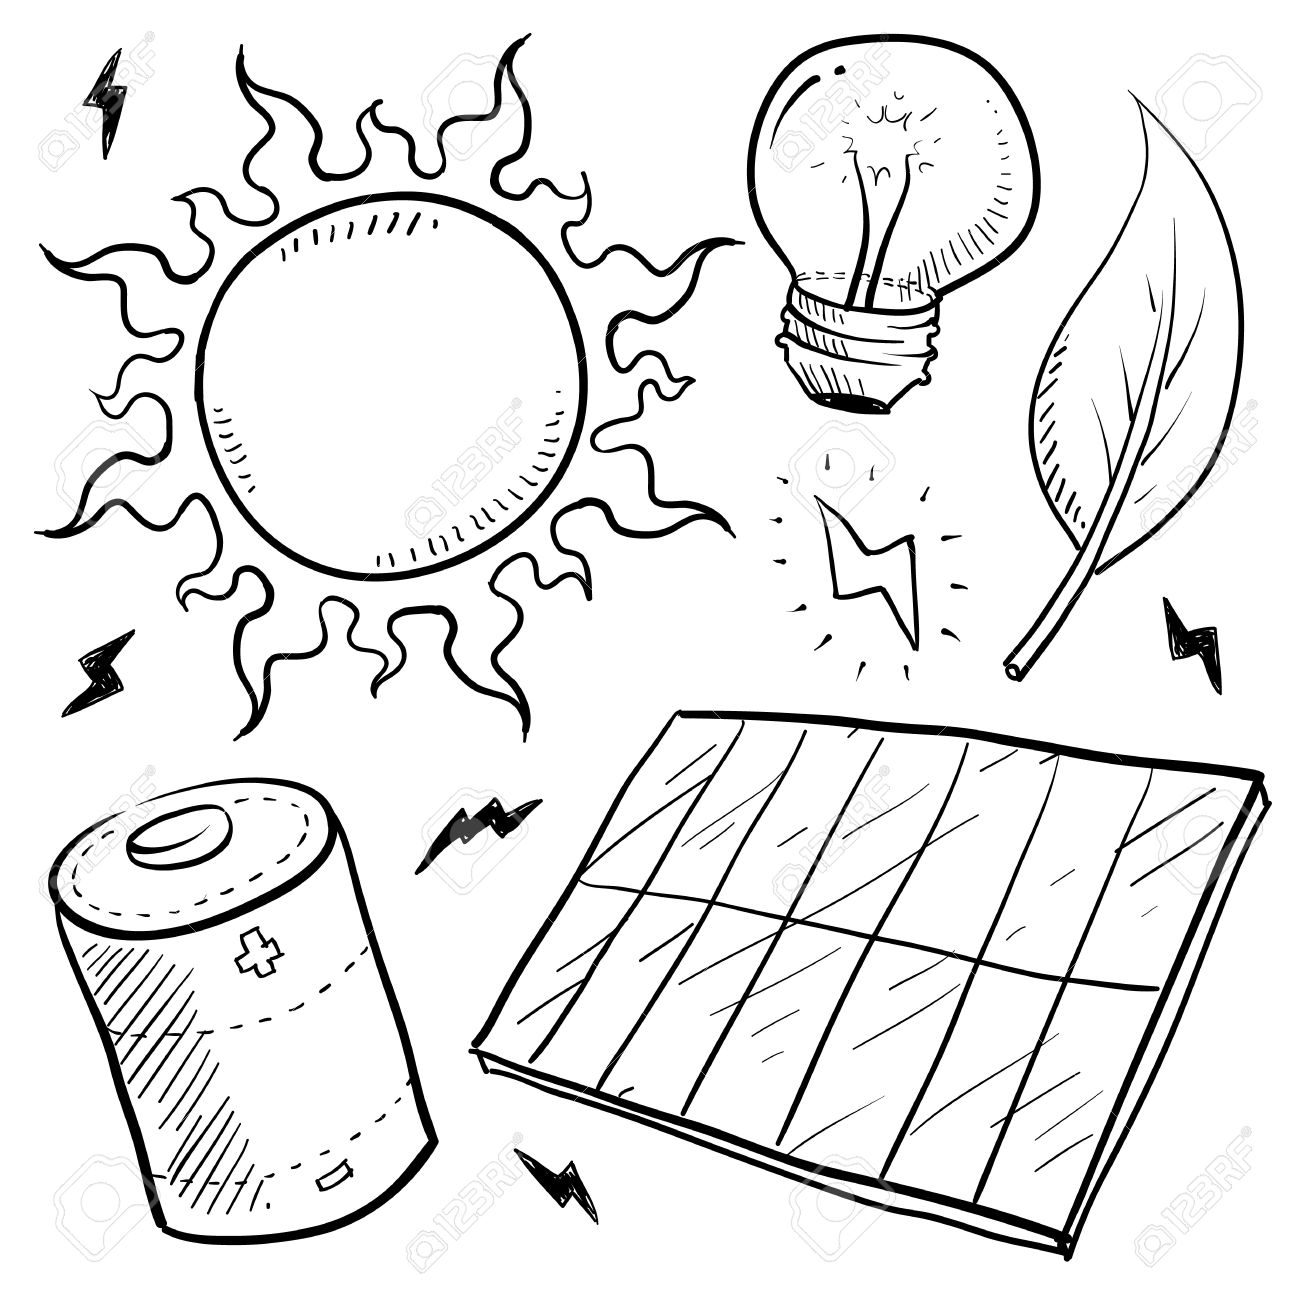 1299x1300 Doodle Style Renewable Solar Energy Equipment Sketch In Vector